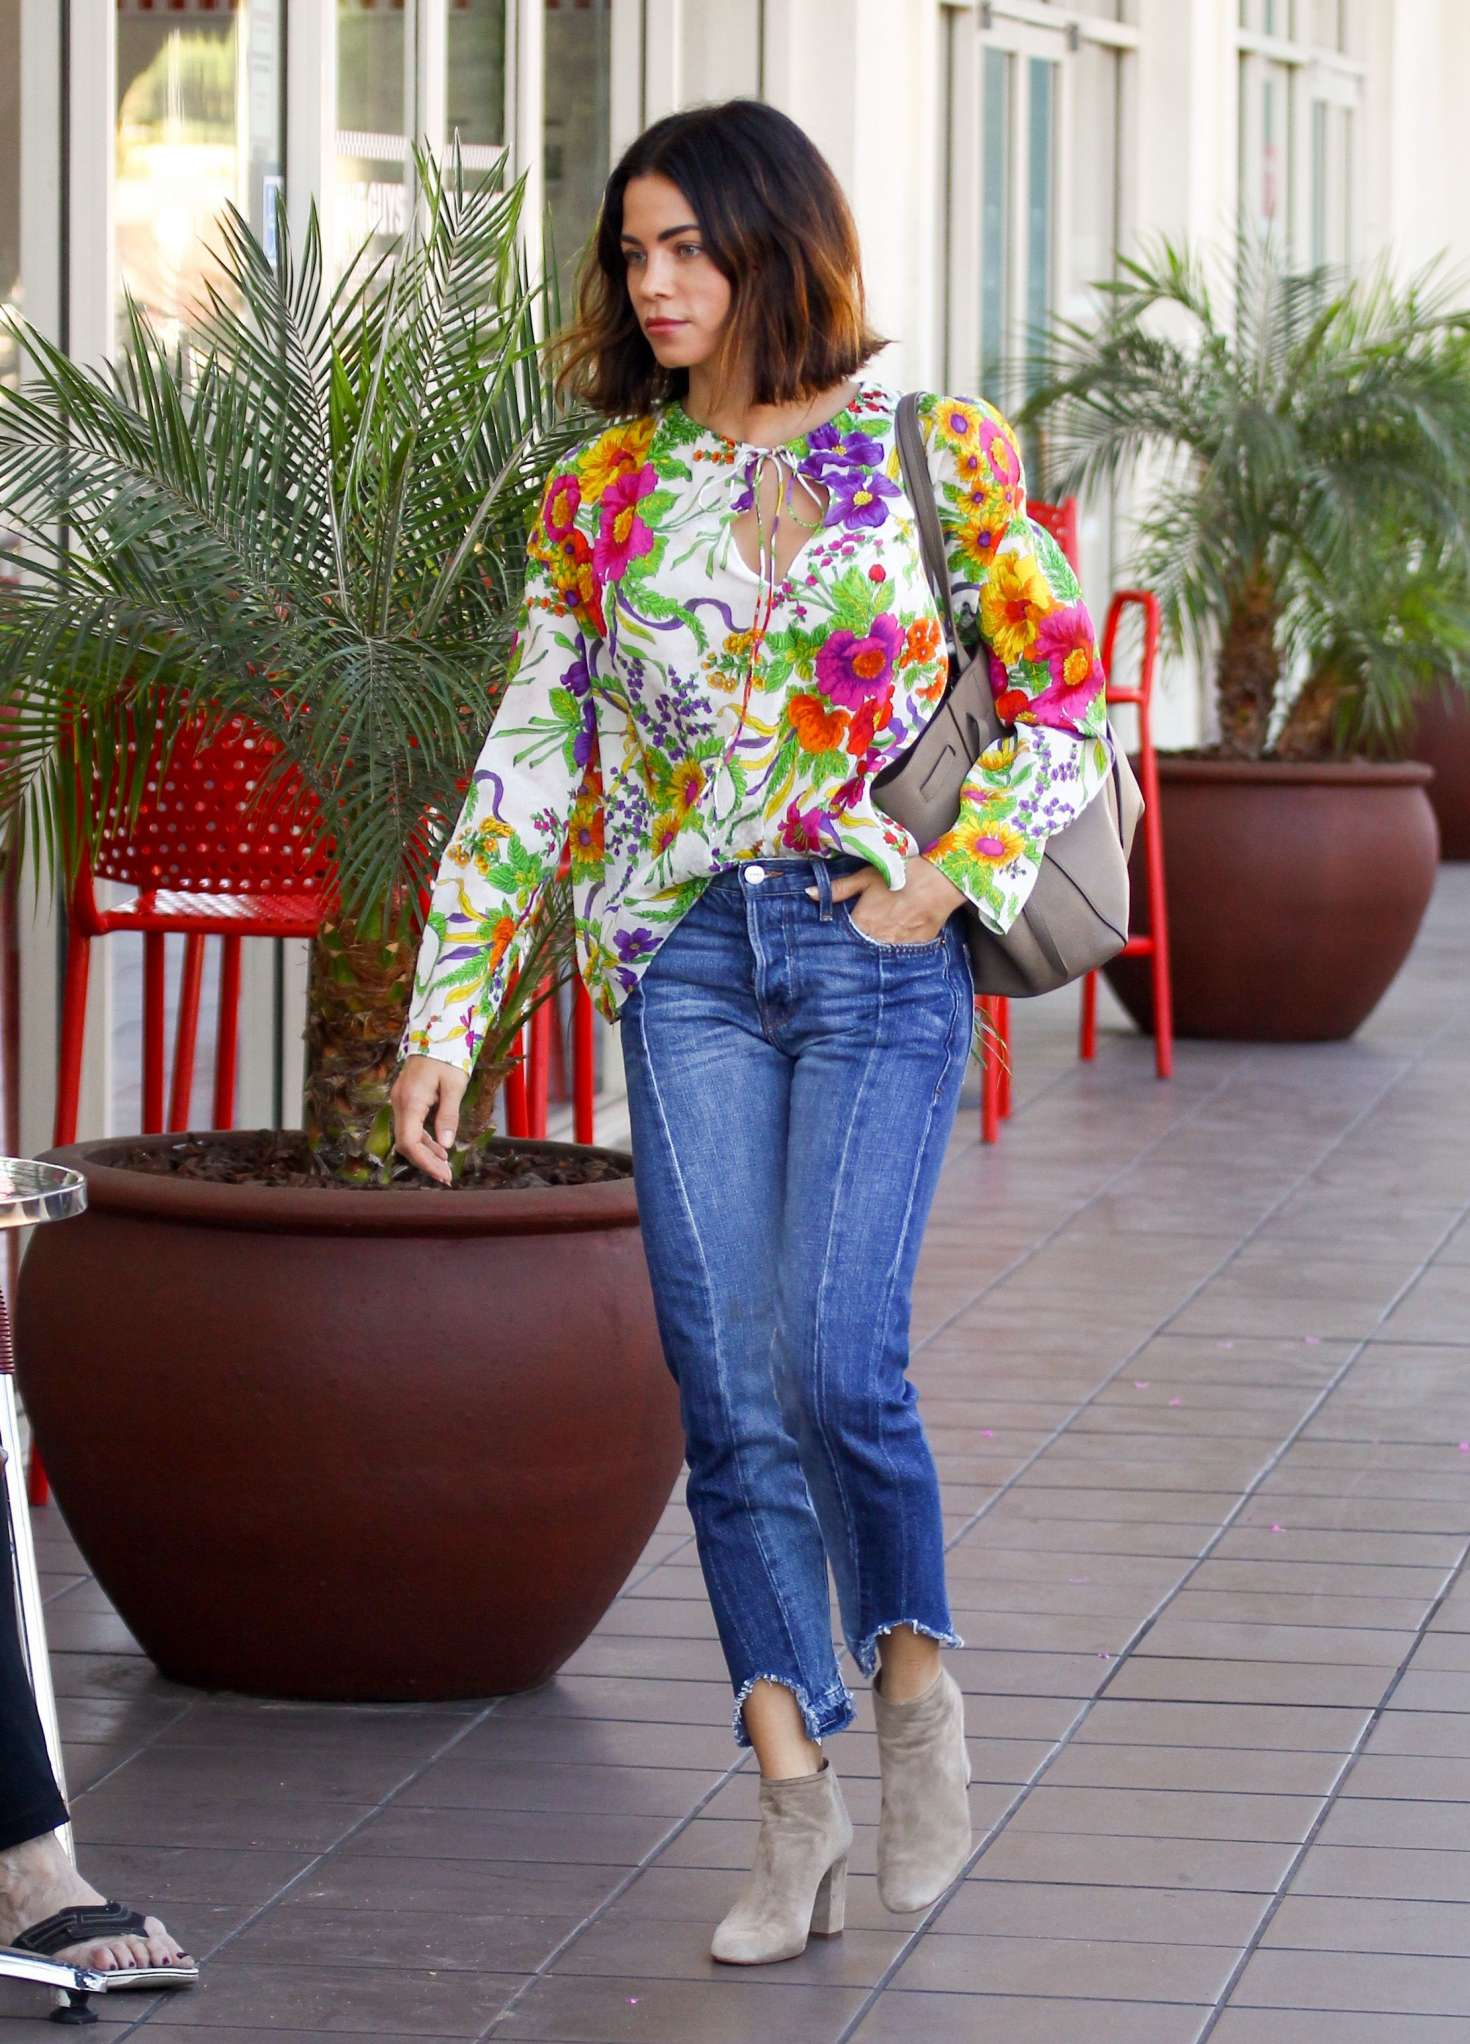 Jenna Dewan Tatum in Floral Shirt out in Los Angeles